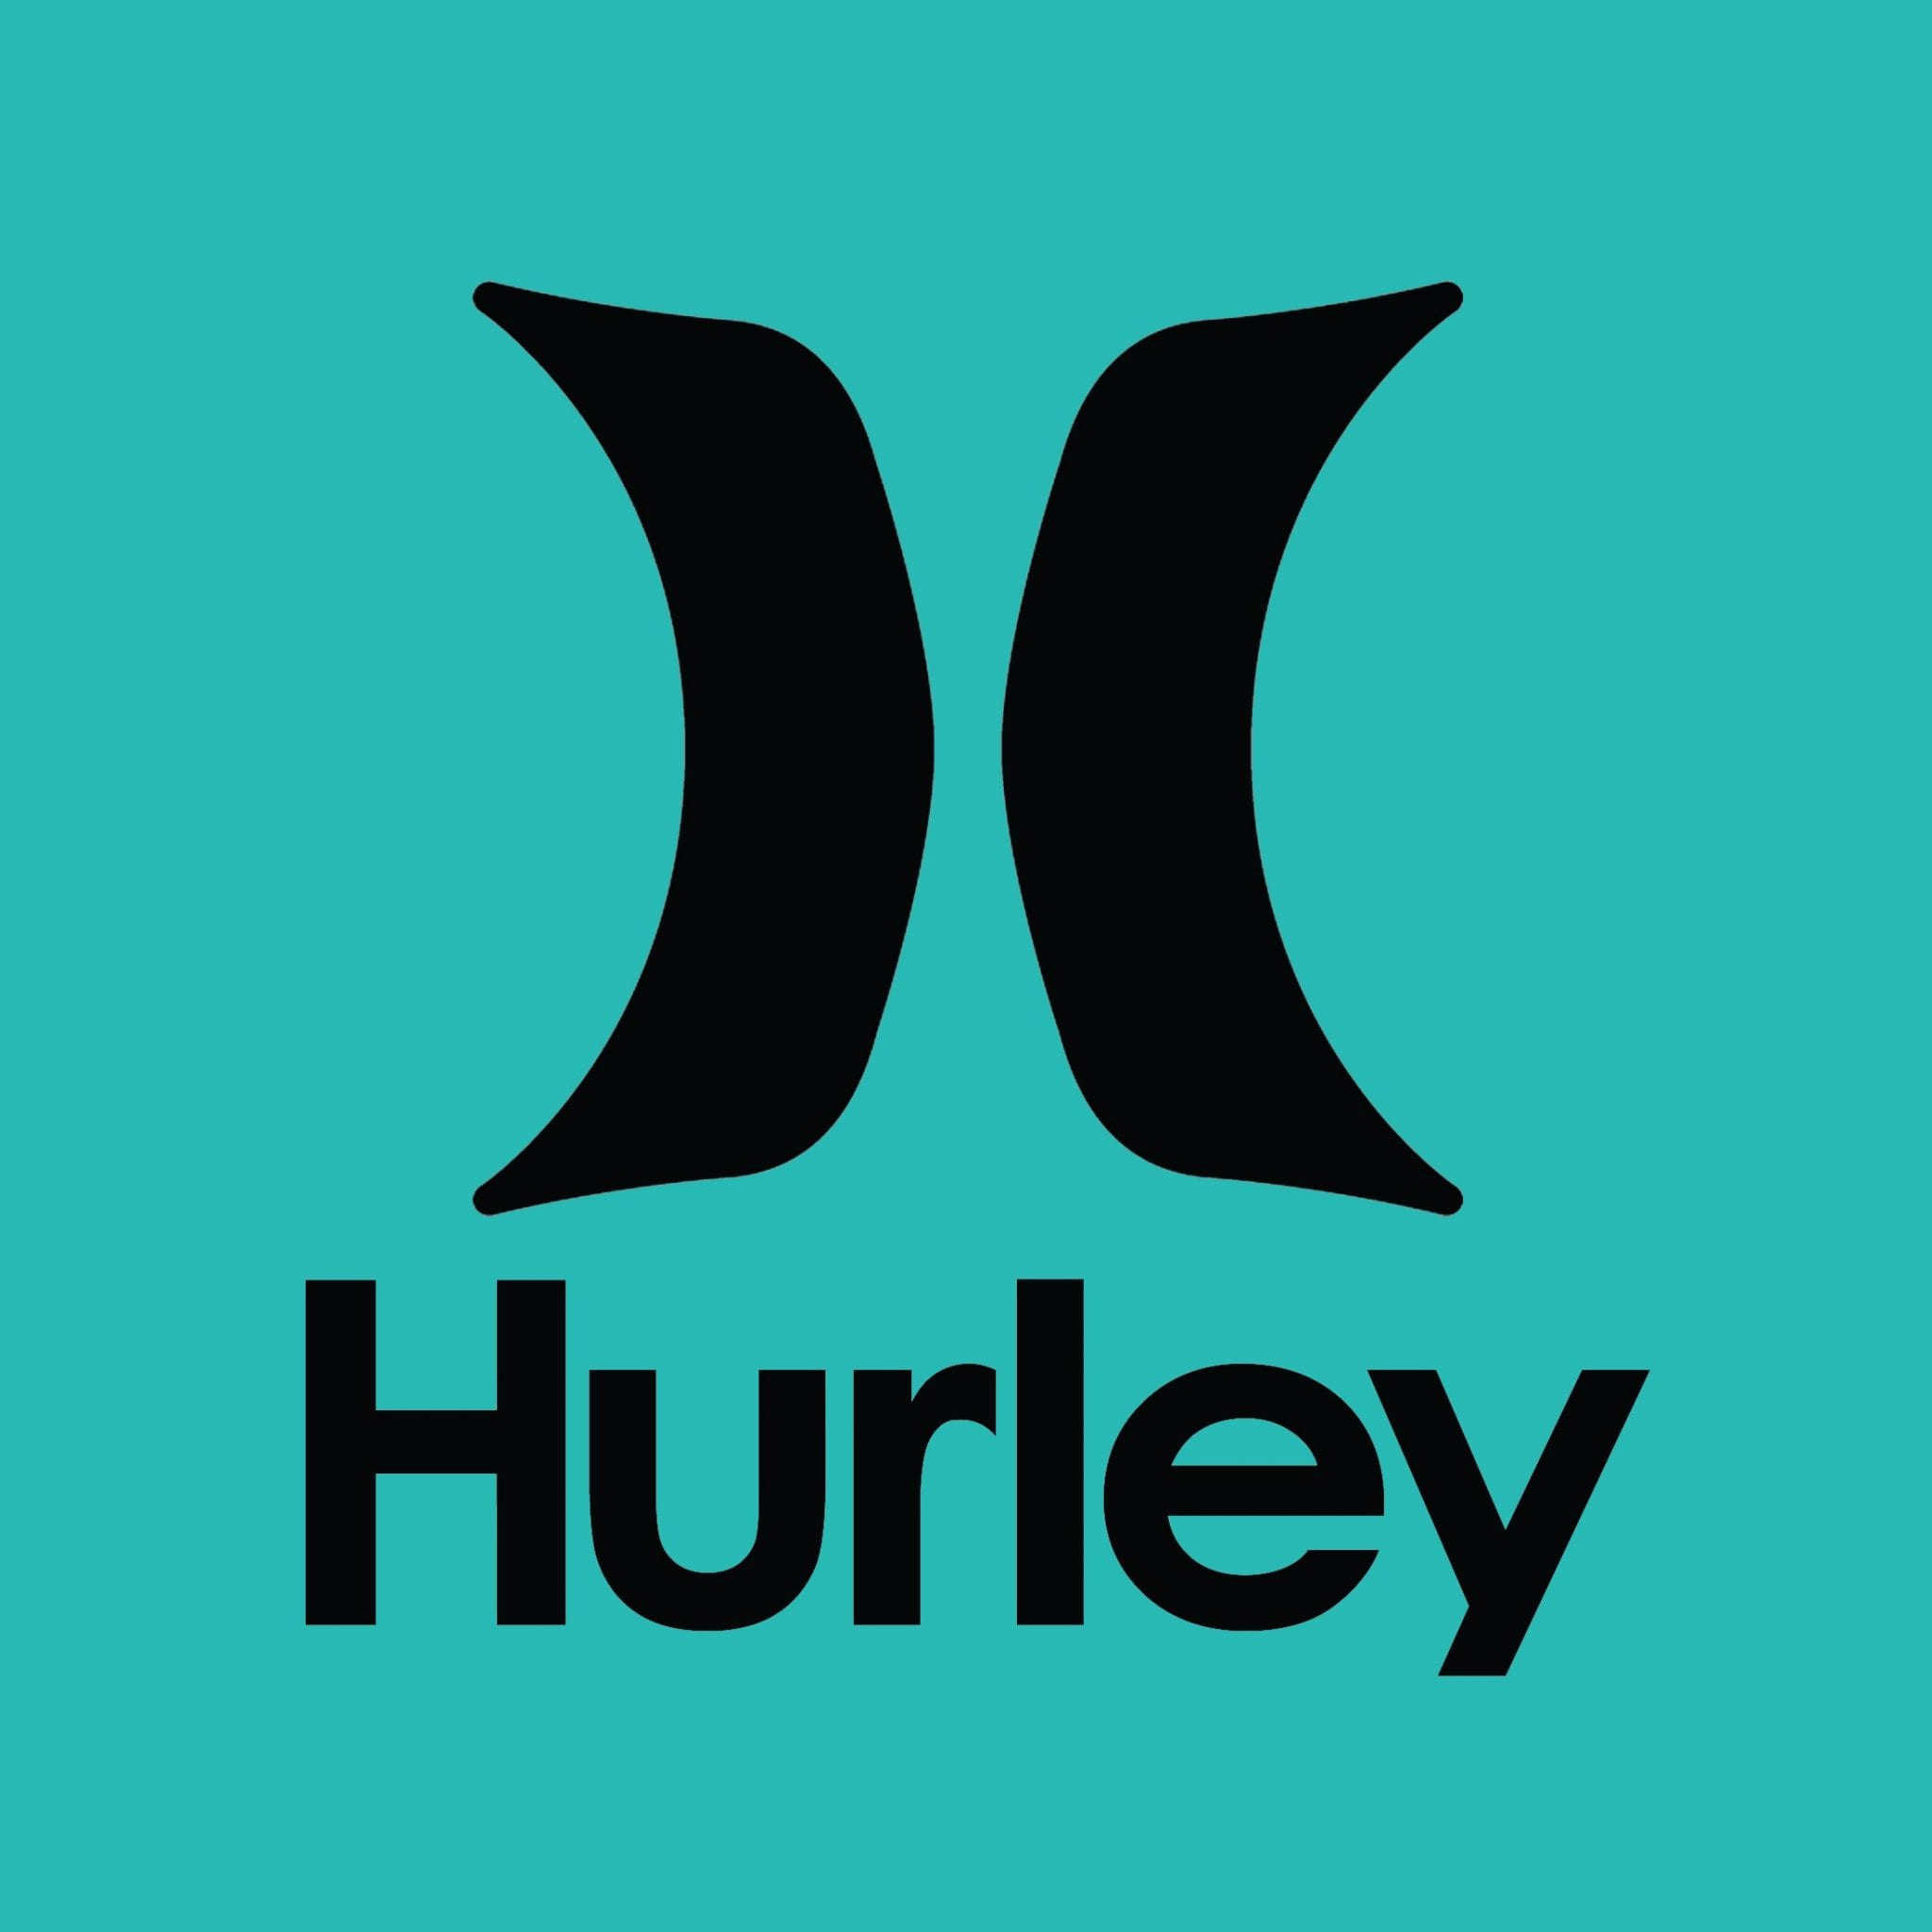 Hurley: Summer Women's Sale! Up to 60% off in August